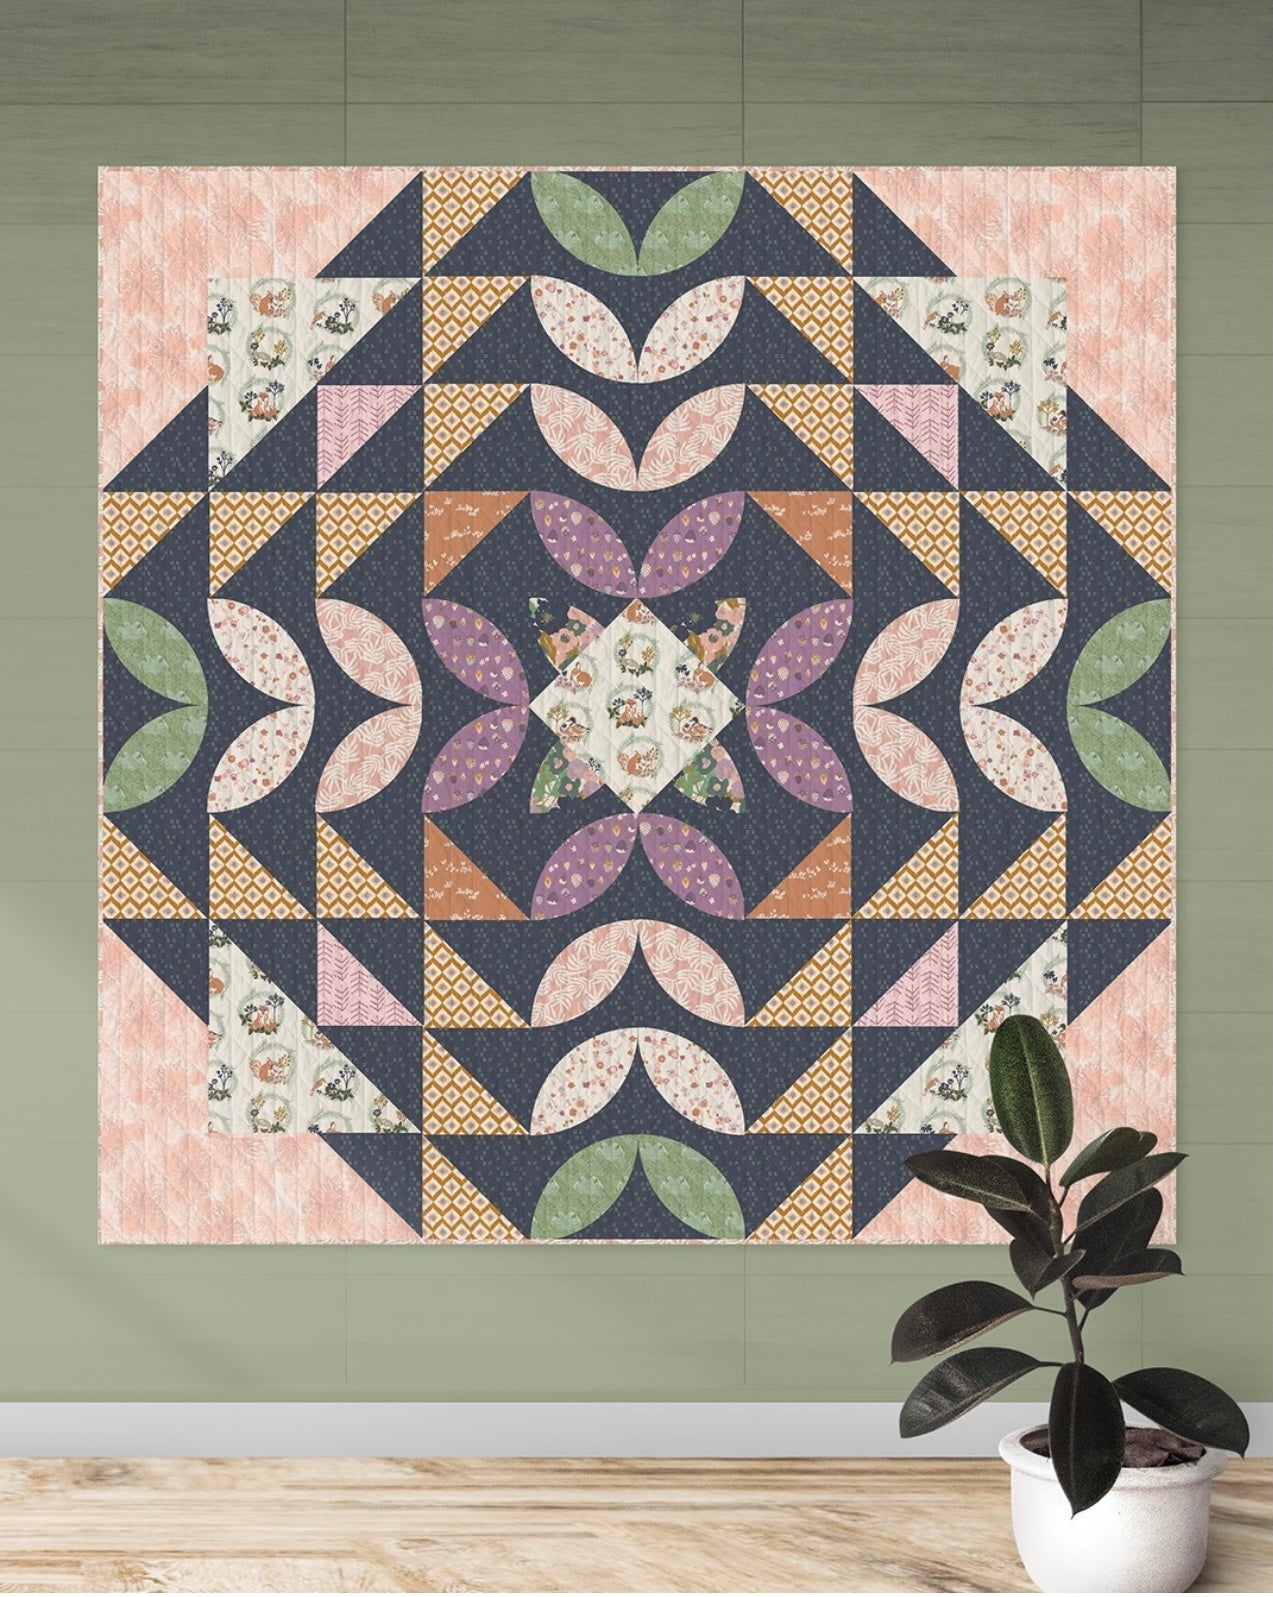 Treasure Hunt Quilt kit